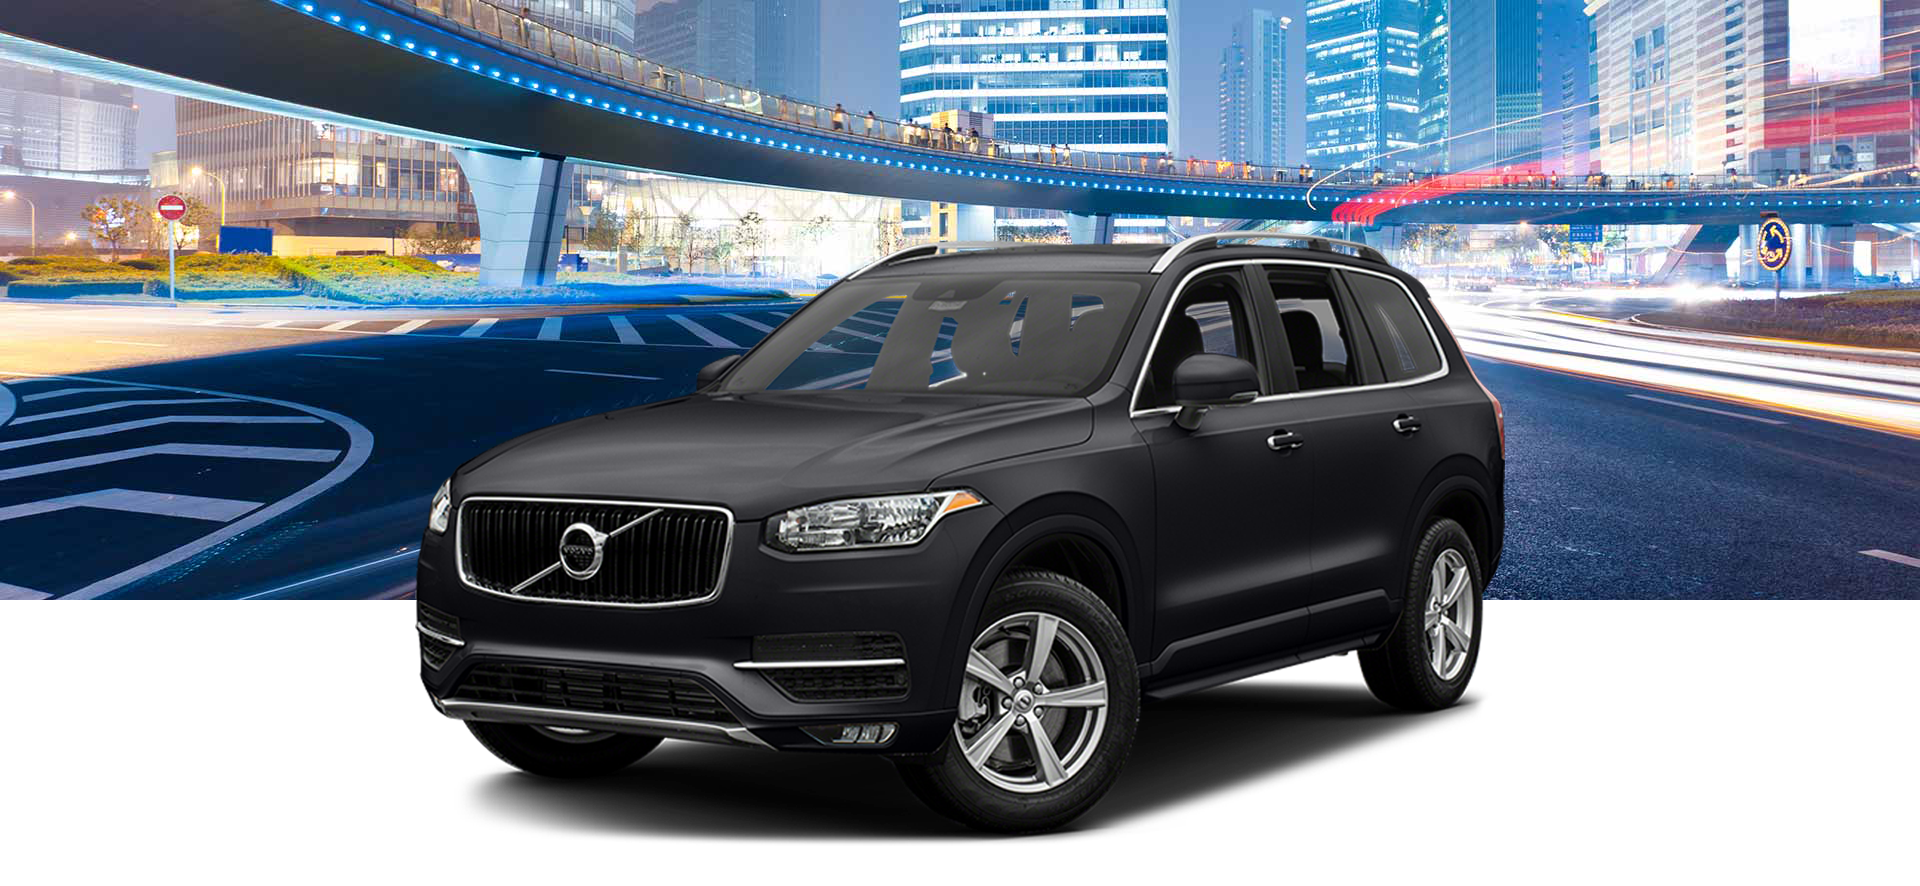 2017 XC90 with background MLP.png